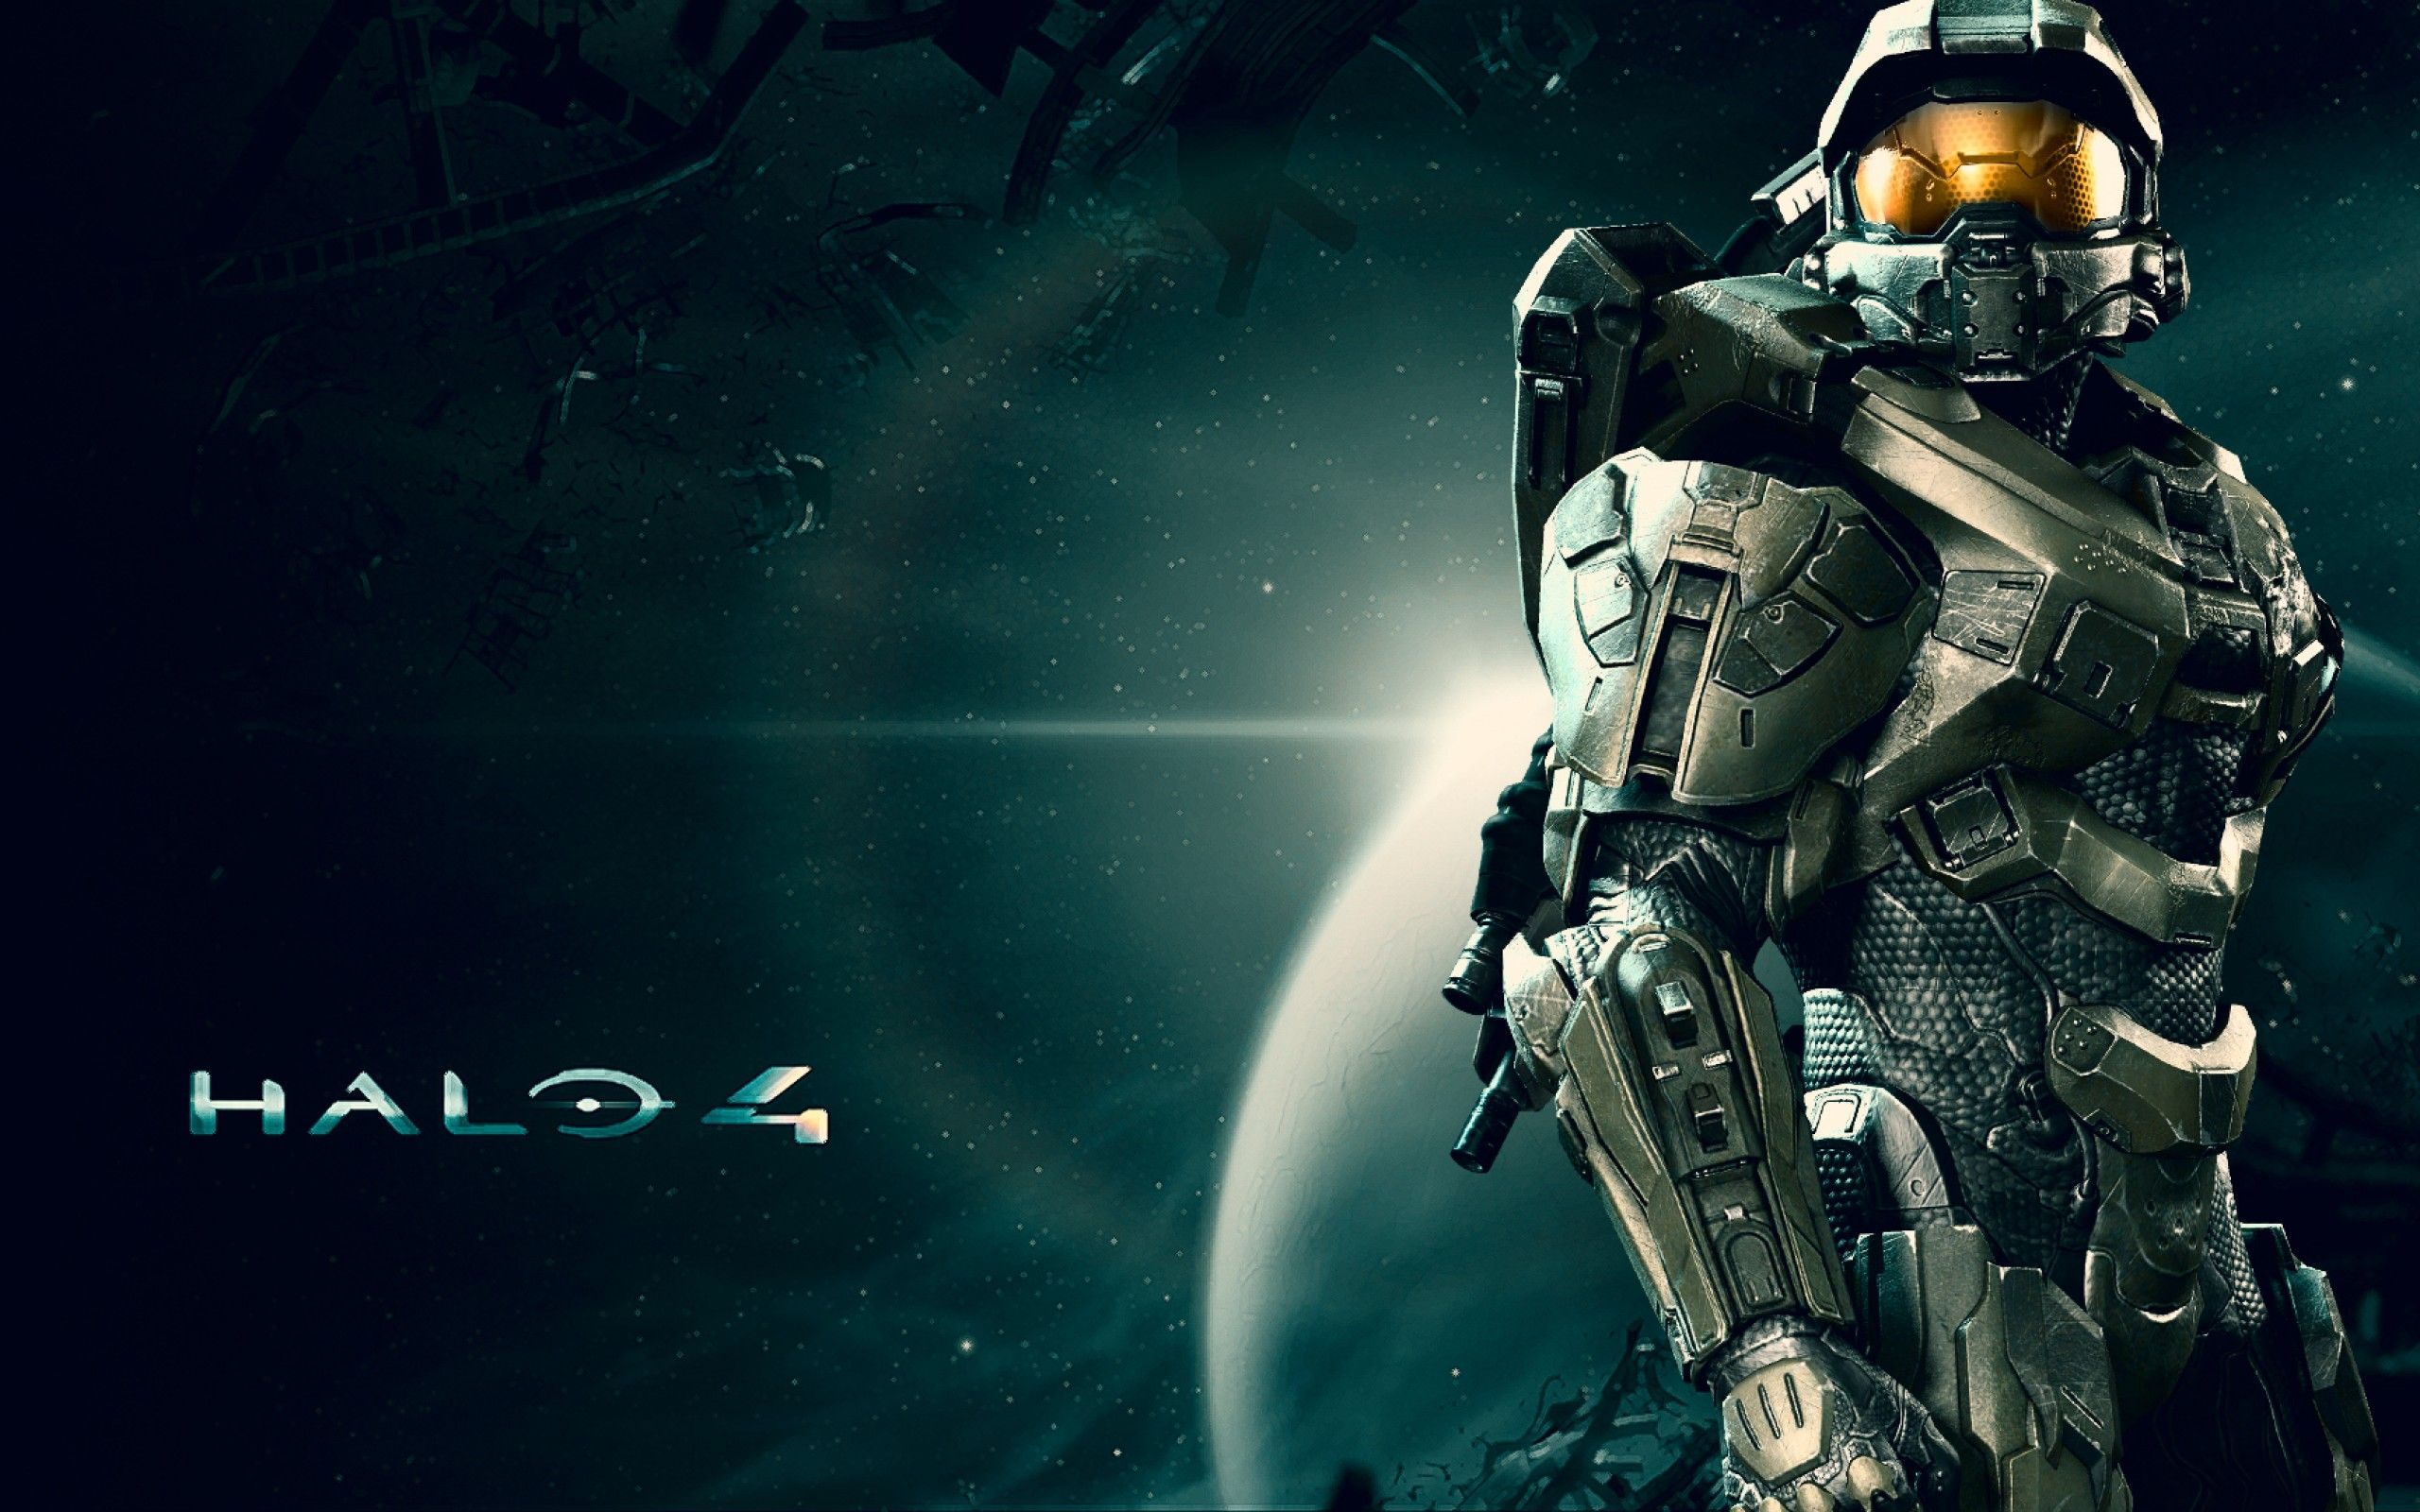 Halo 4 Wallpapers Top Free Halo 4 Backgrounds